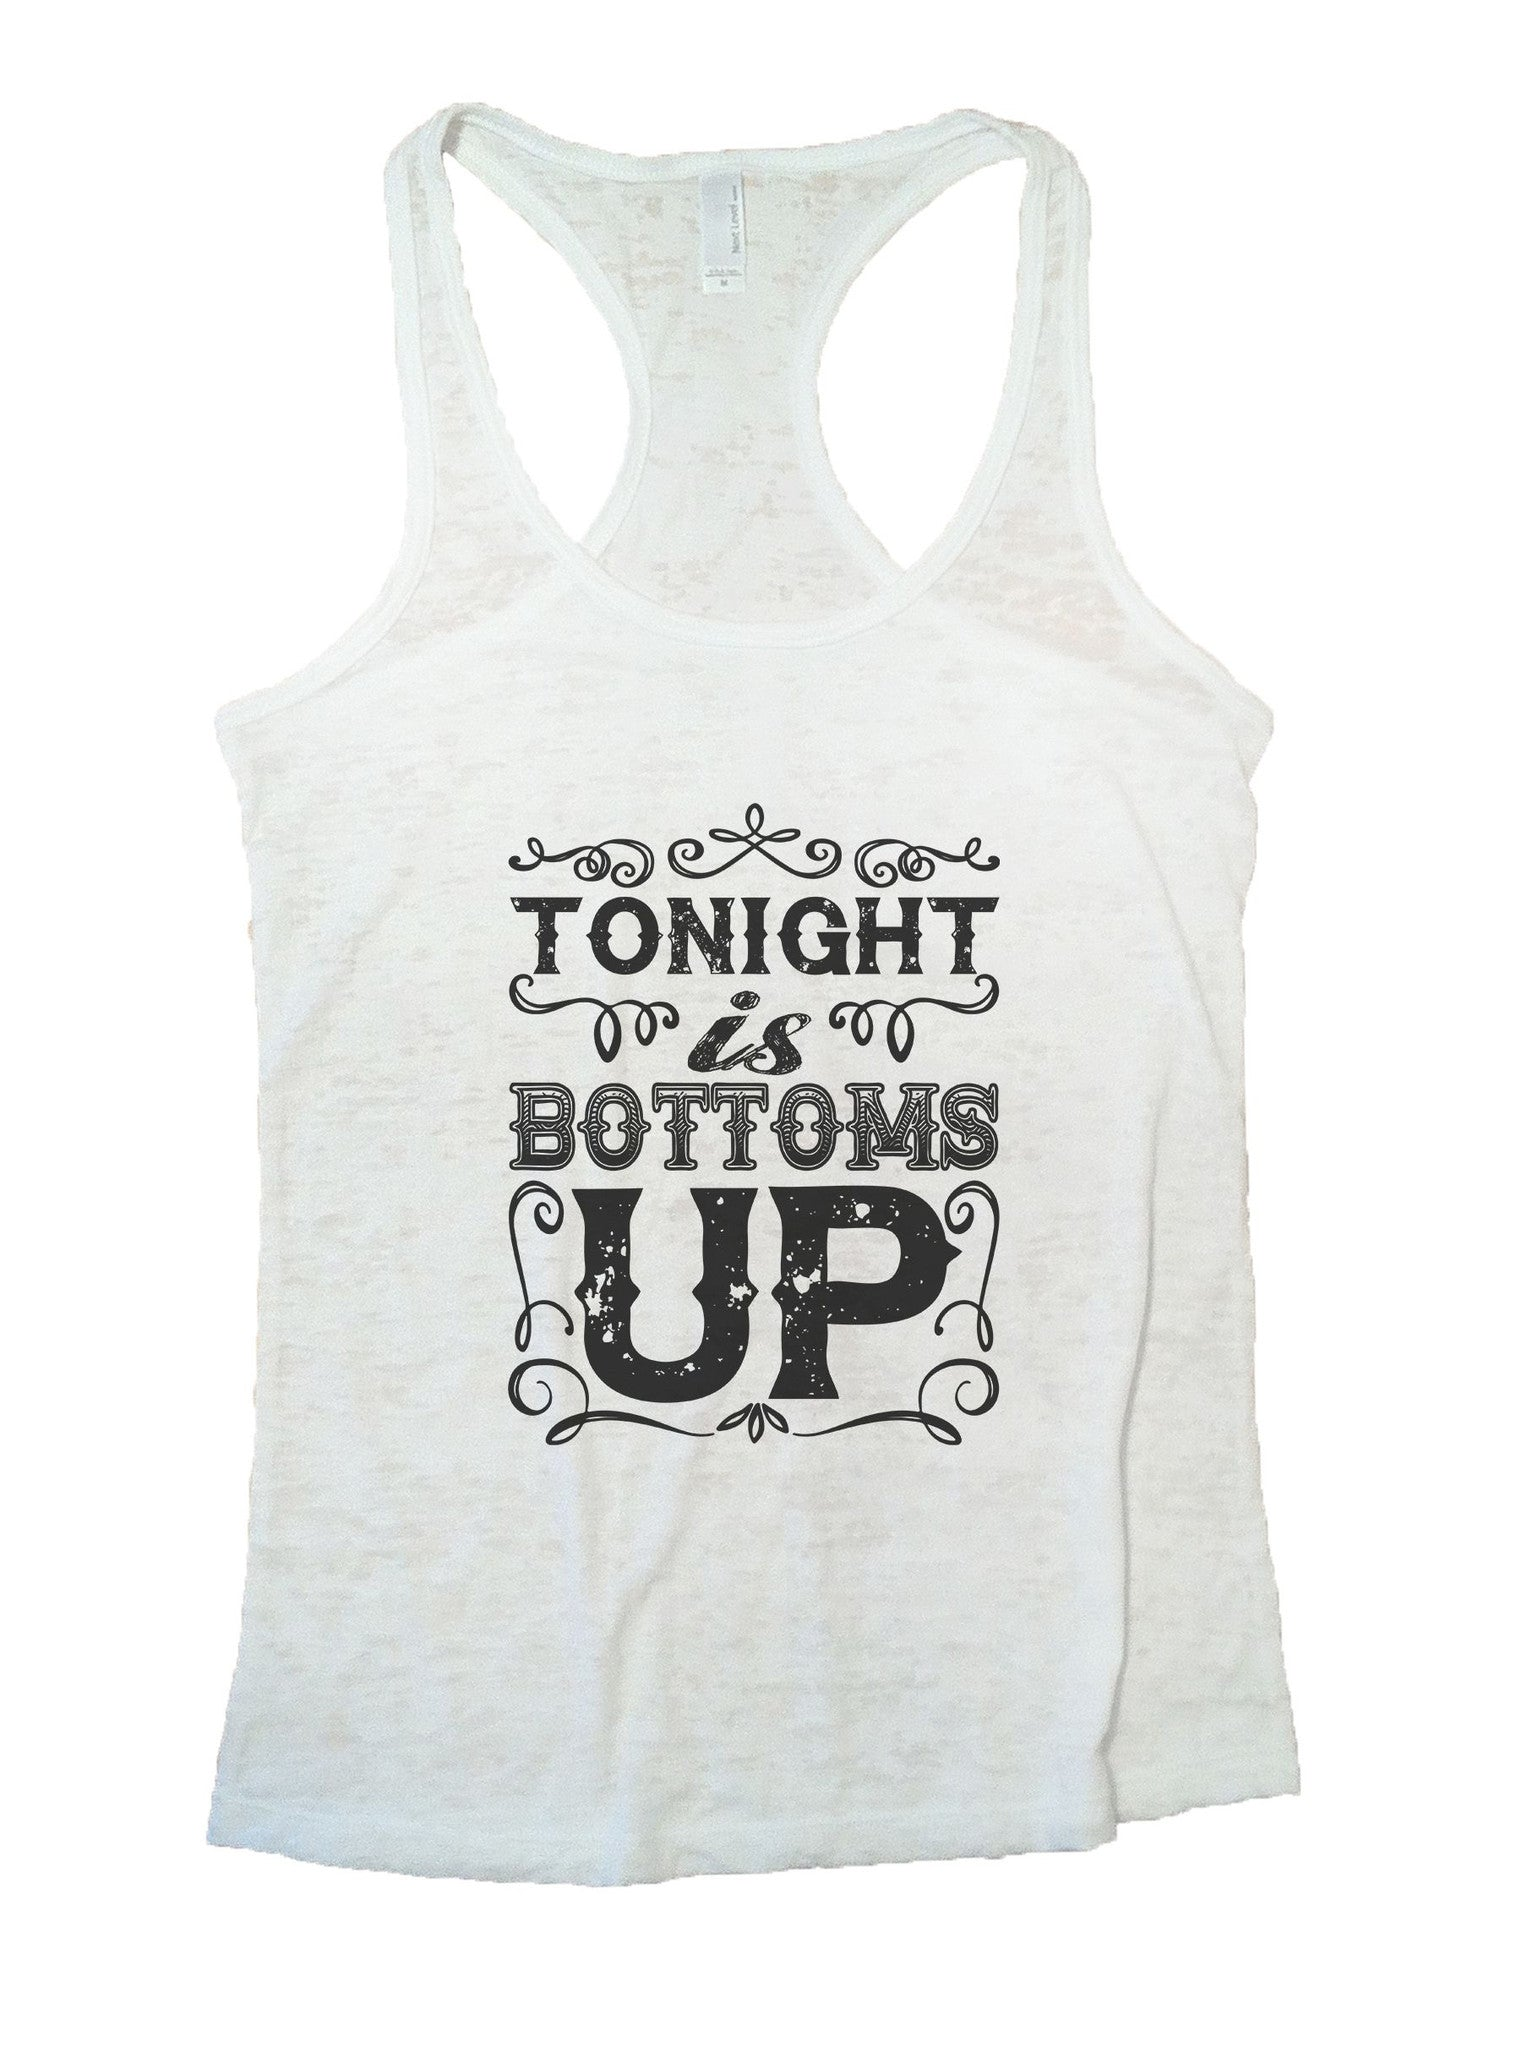 Tonight Is Bottoms Up Burnout Tank Top By BurnoutTankTops.com - 936 - Funny Shirts Tank Tops Burnouts and Triblends  - 4